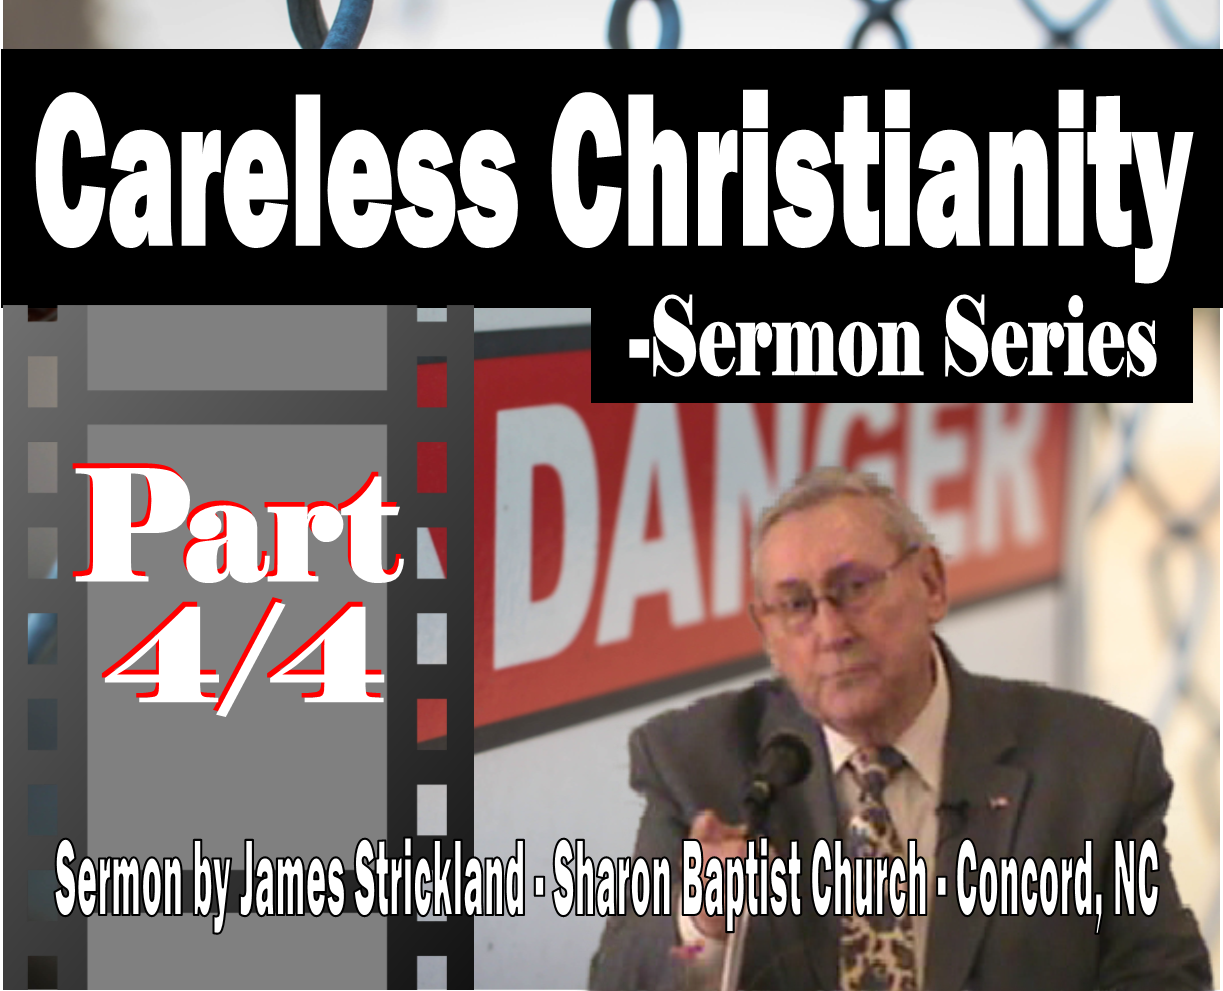 Careless Christianity Sermon PART 4 VIDEO - Sermon by James Strickland